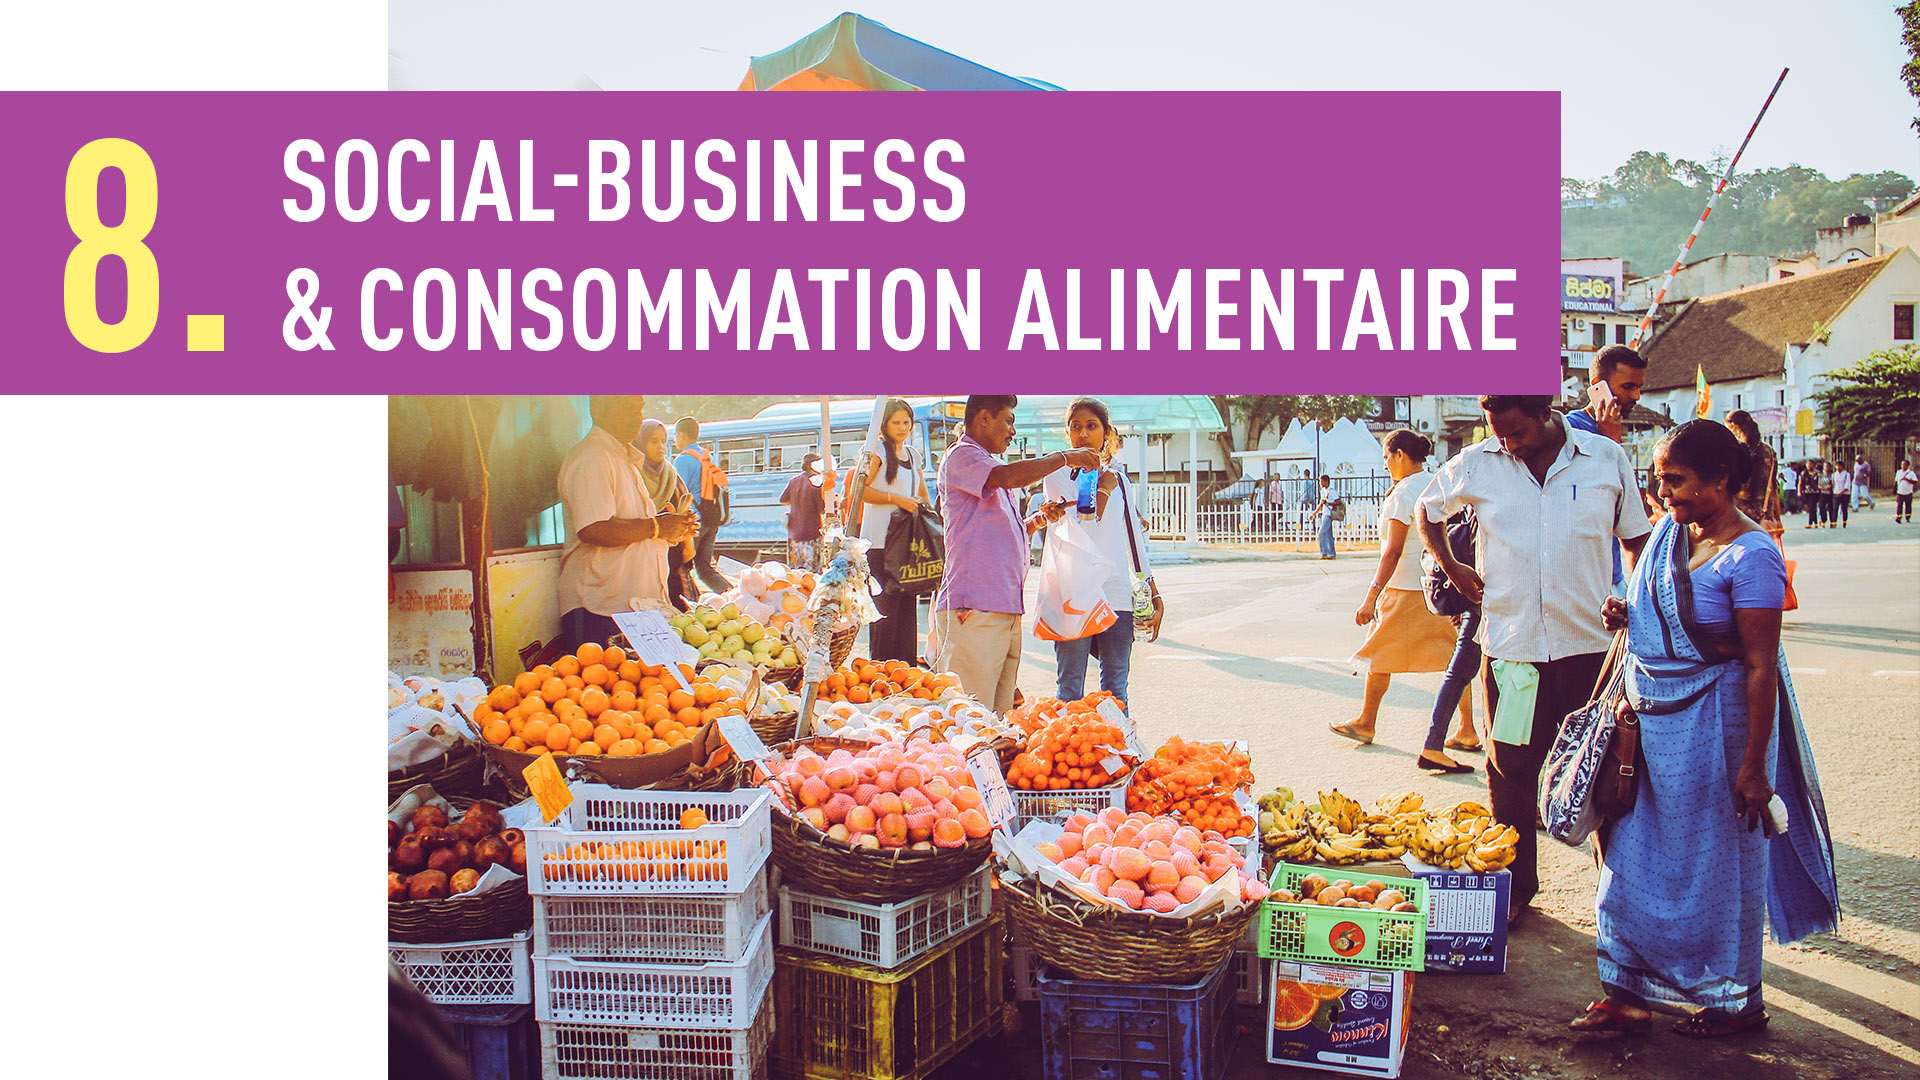 SOCIAL-BUSINESS & CONSOMMATION ALIMENTAIRE